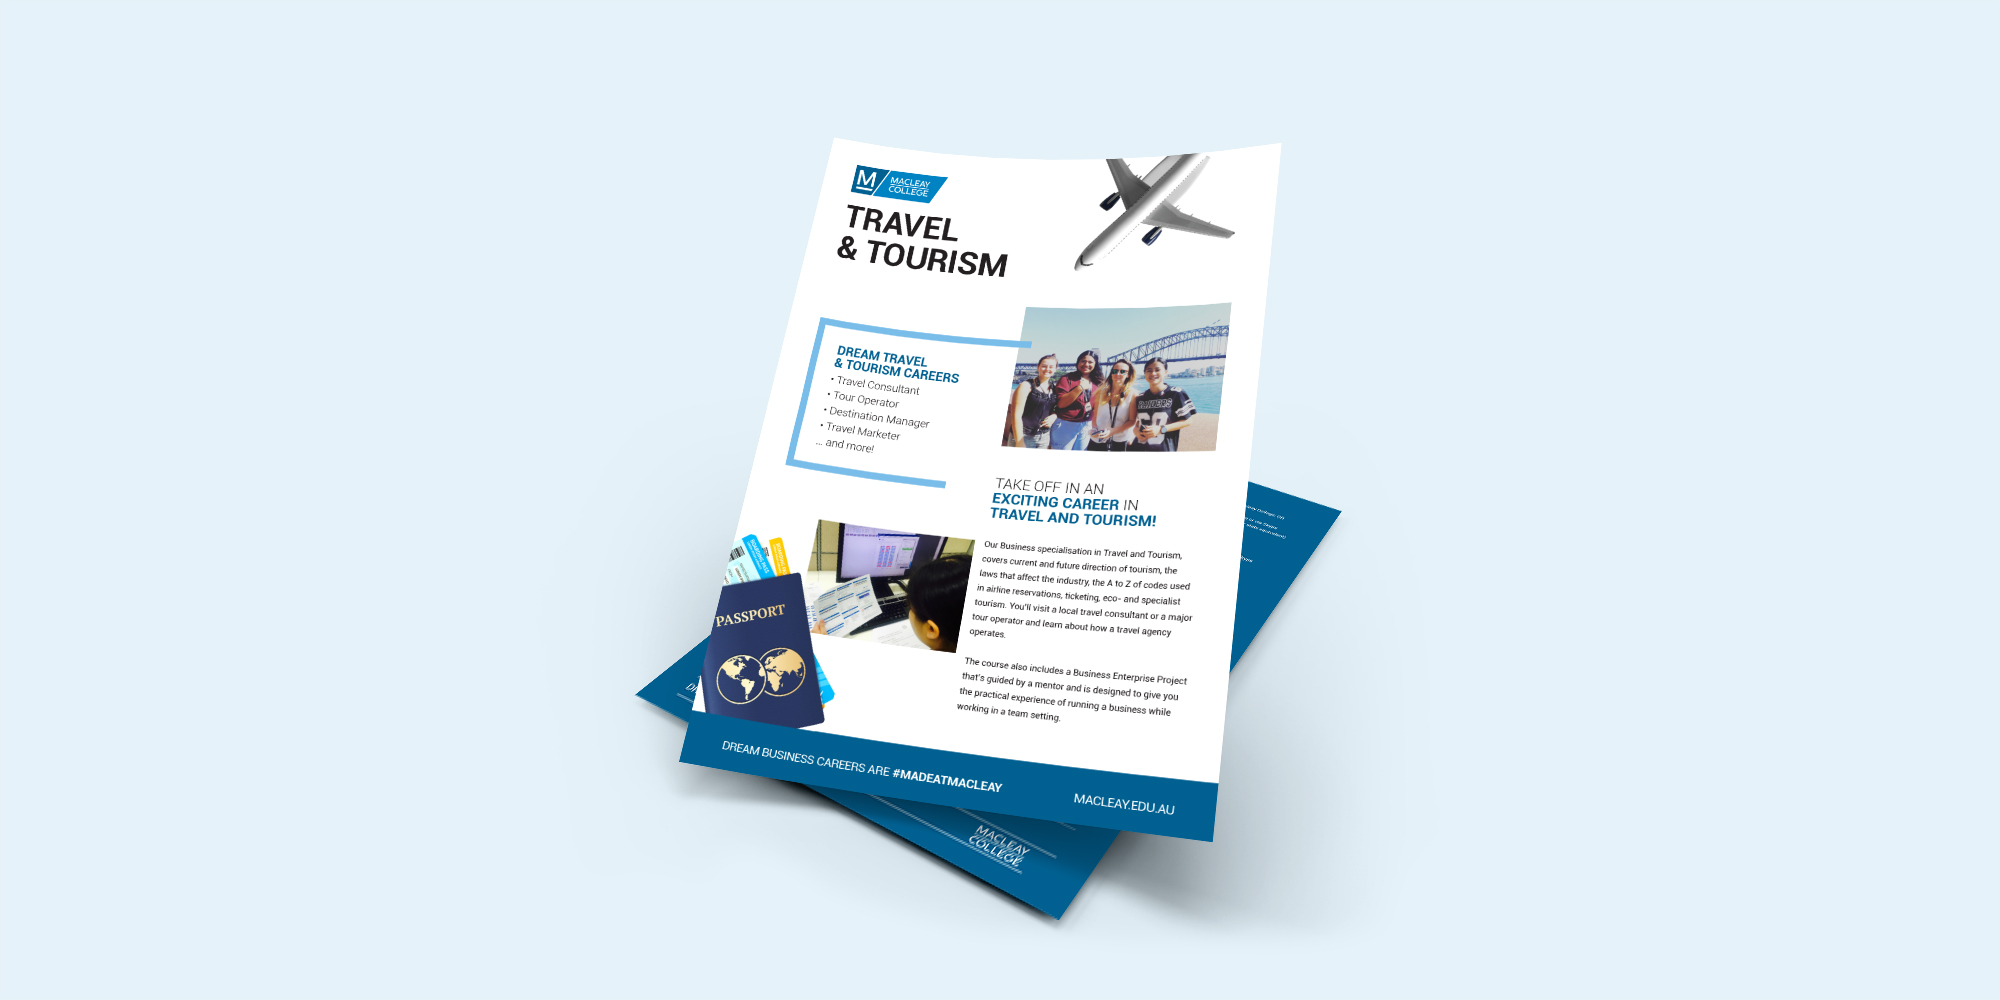 Macleay College Tourism Flyer